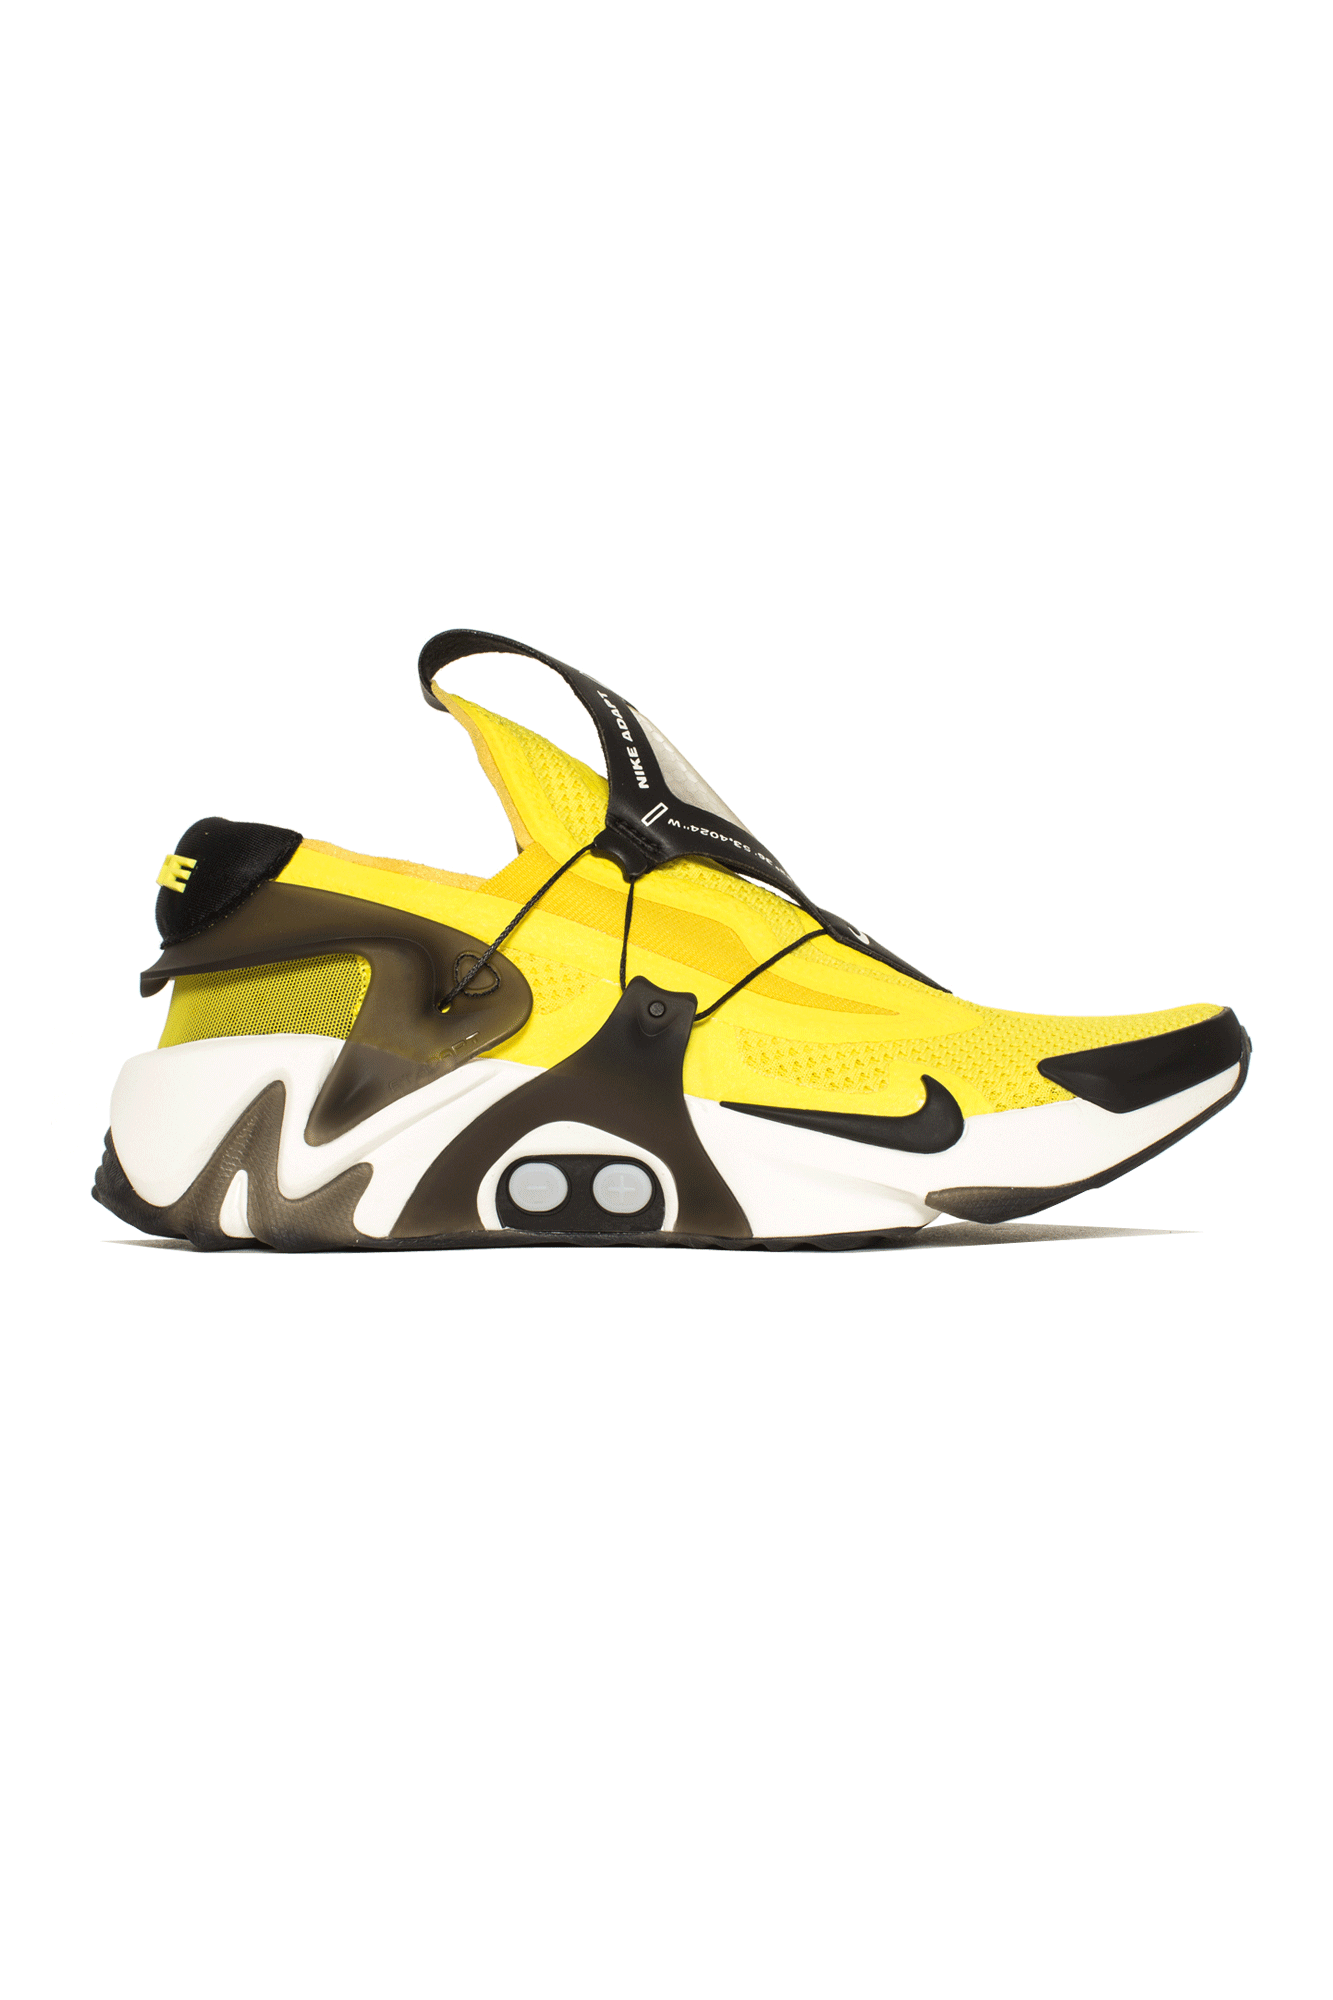 Adapt Huarache Yellow